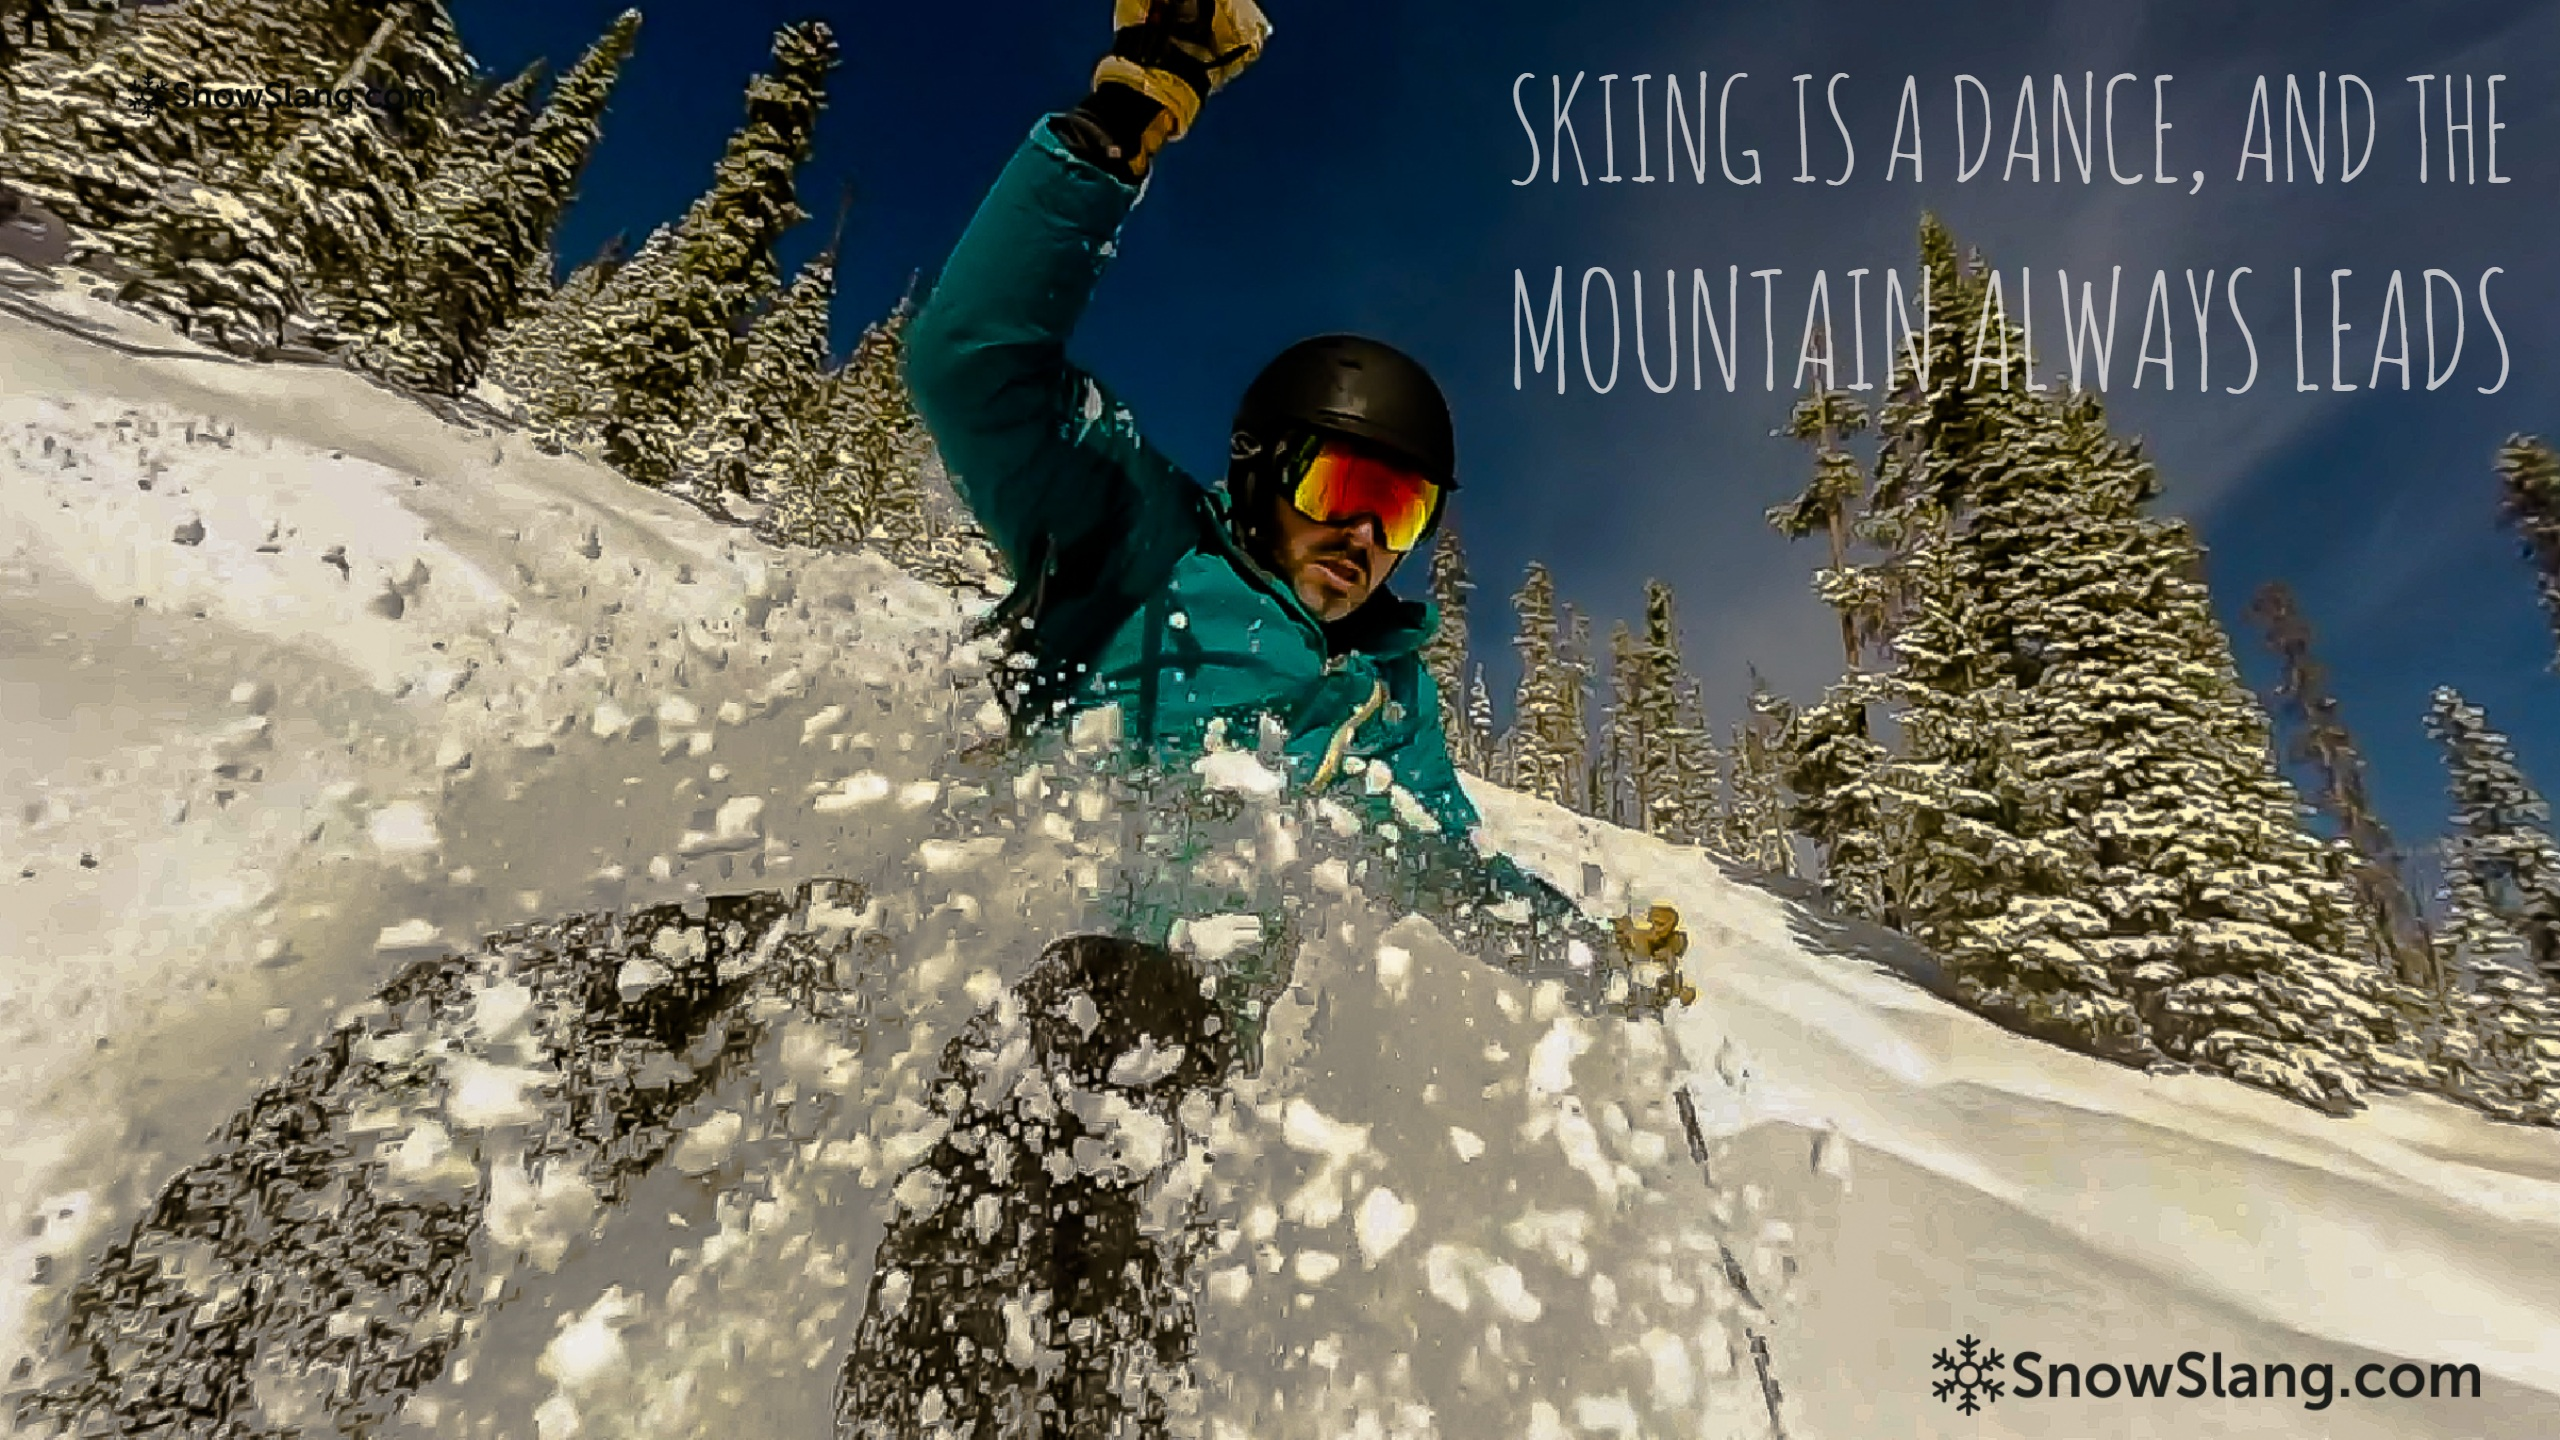 Skiing quotes and snowboarding sayings- SnowSlang.com